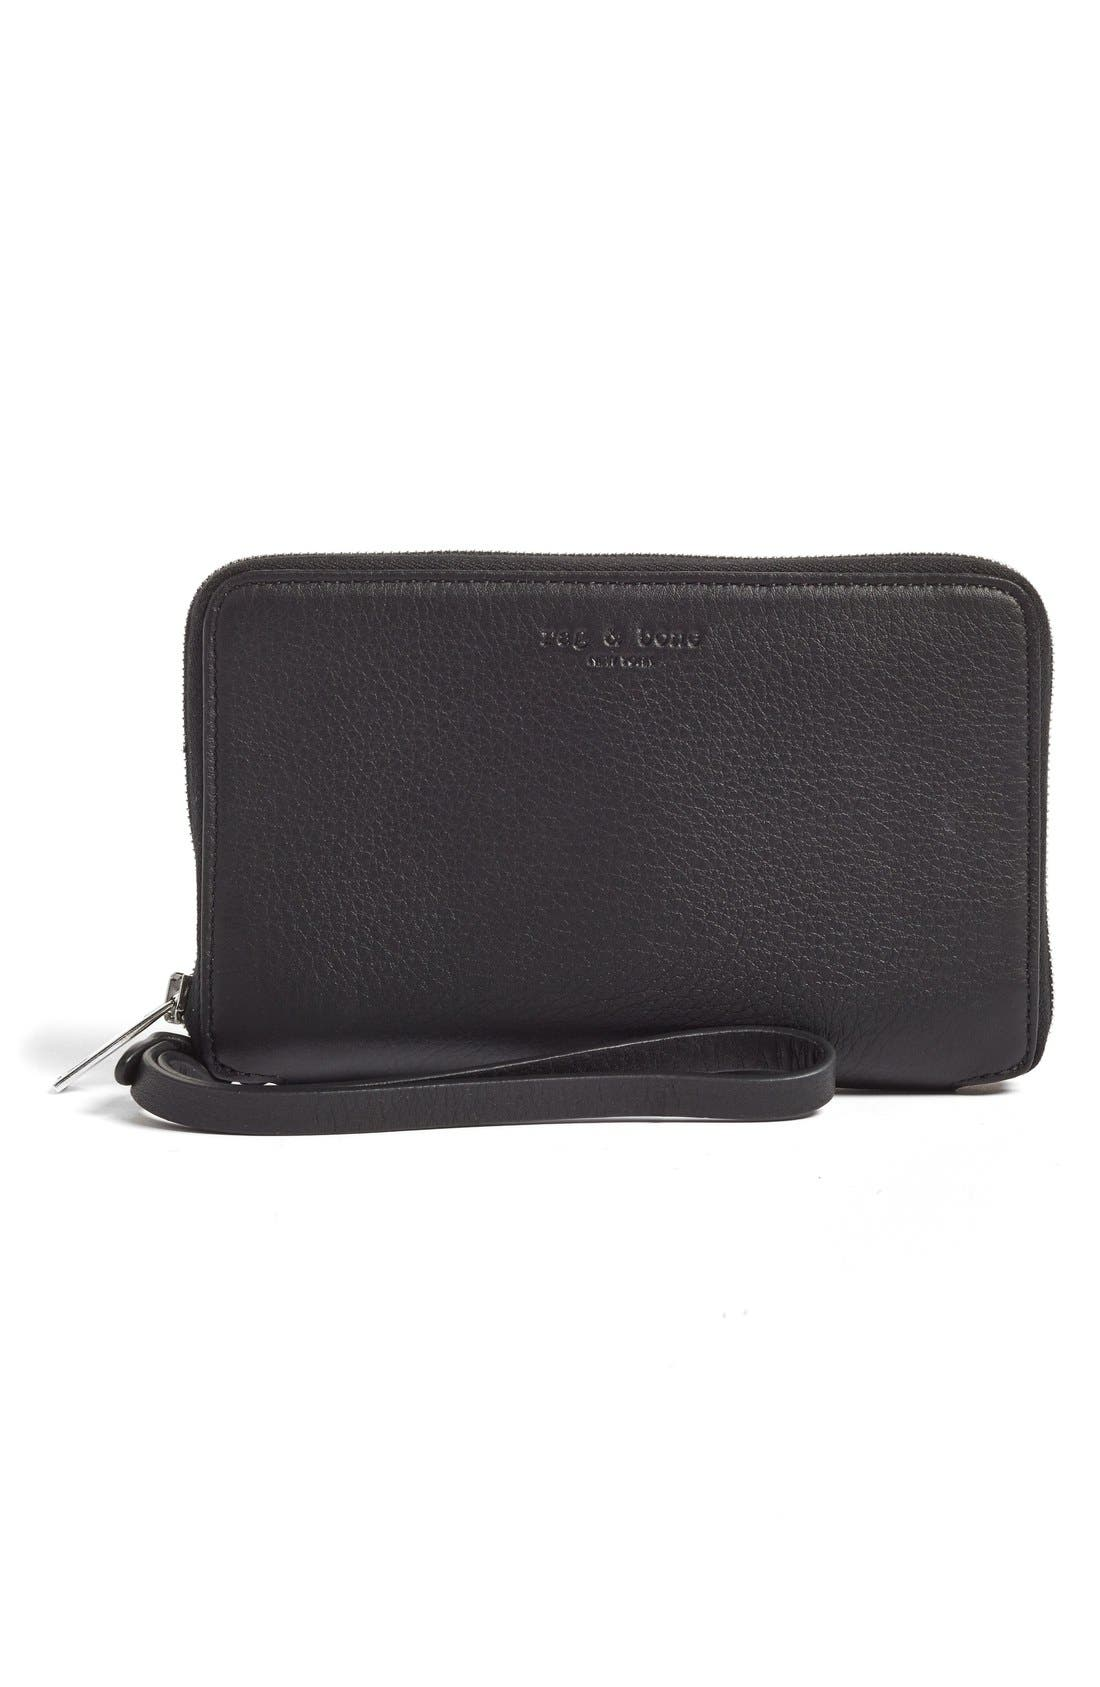 rag & bone Zip Around Leather Smartphone Wallet